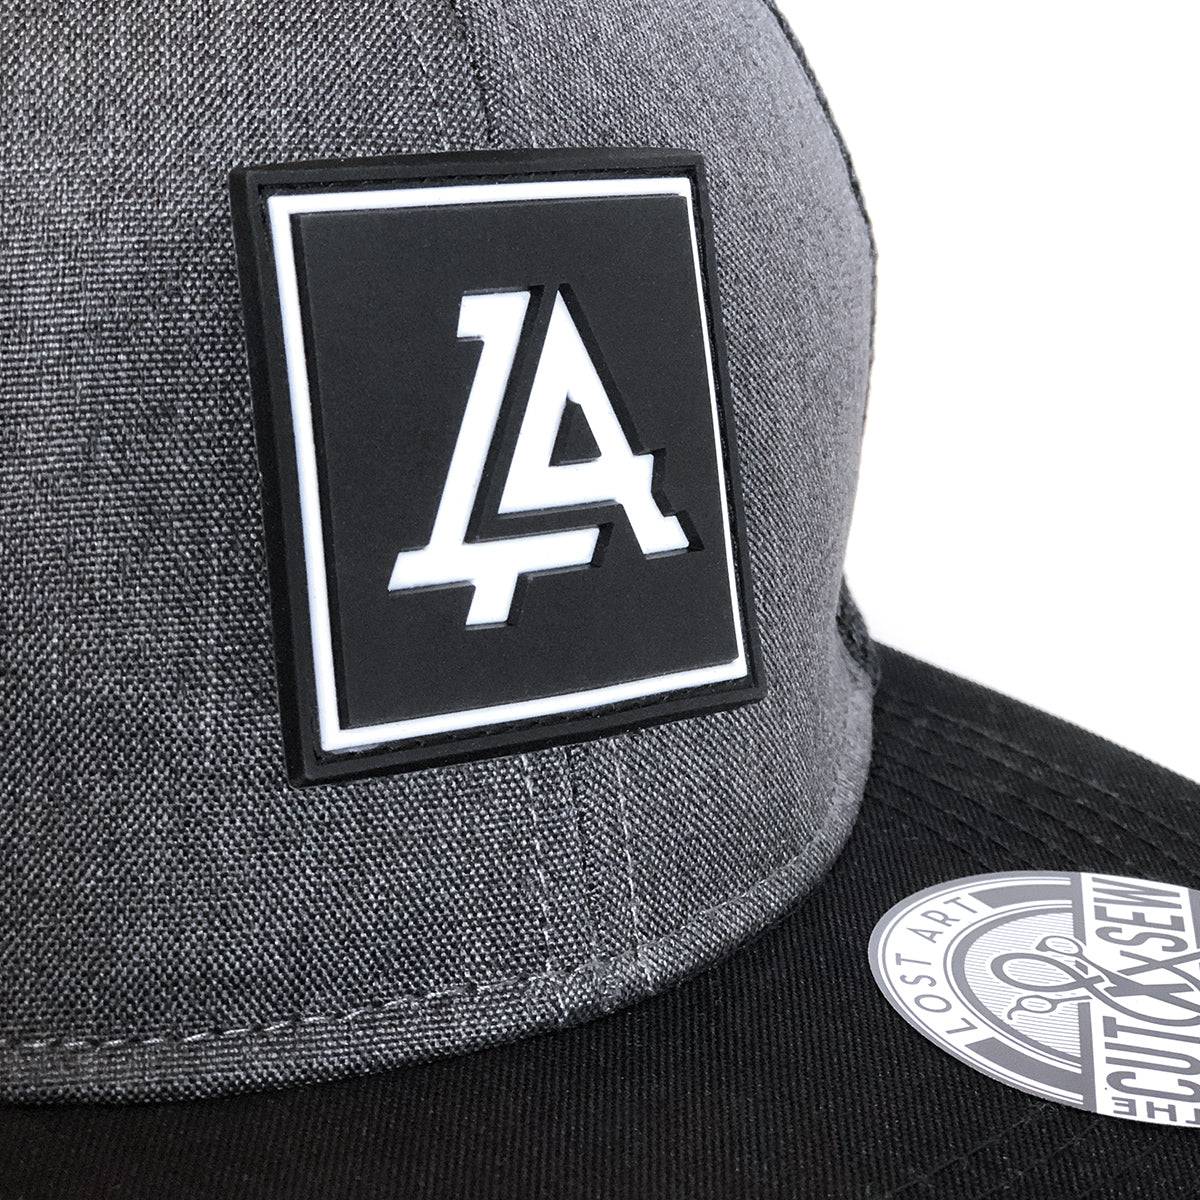 Lost Art Canada - grey and black patch snapback hat close up